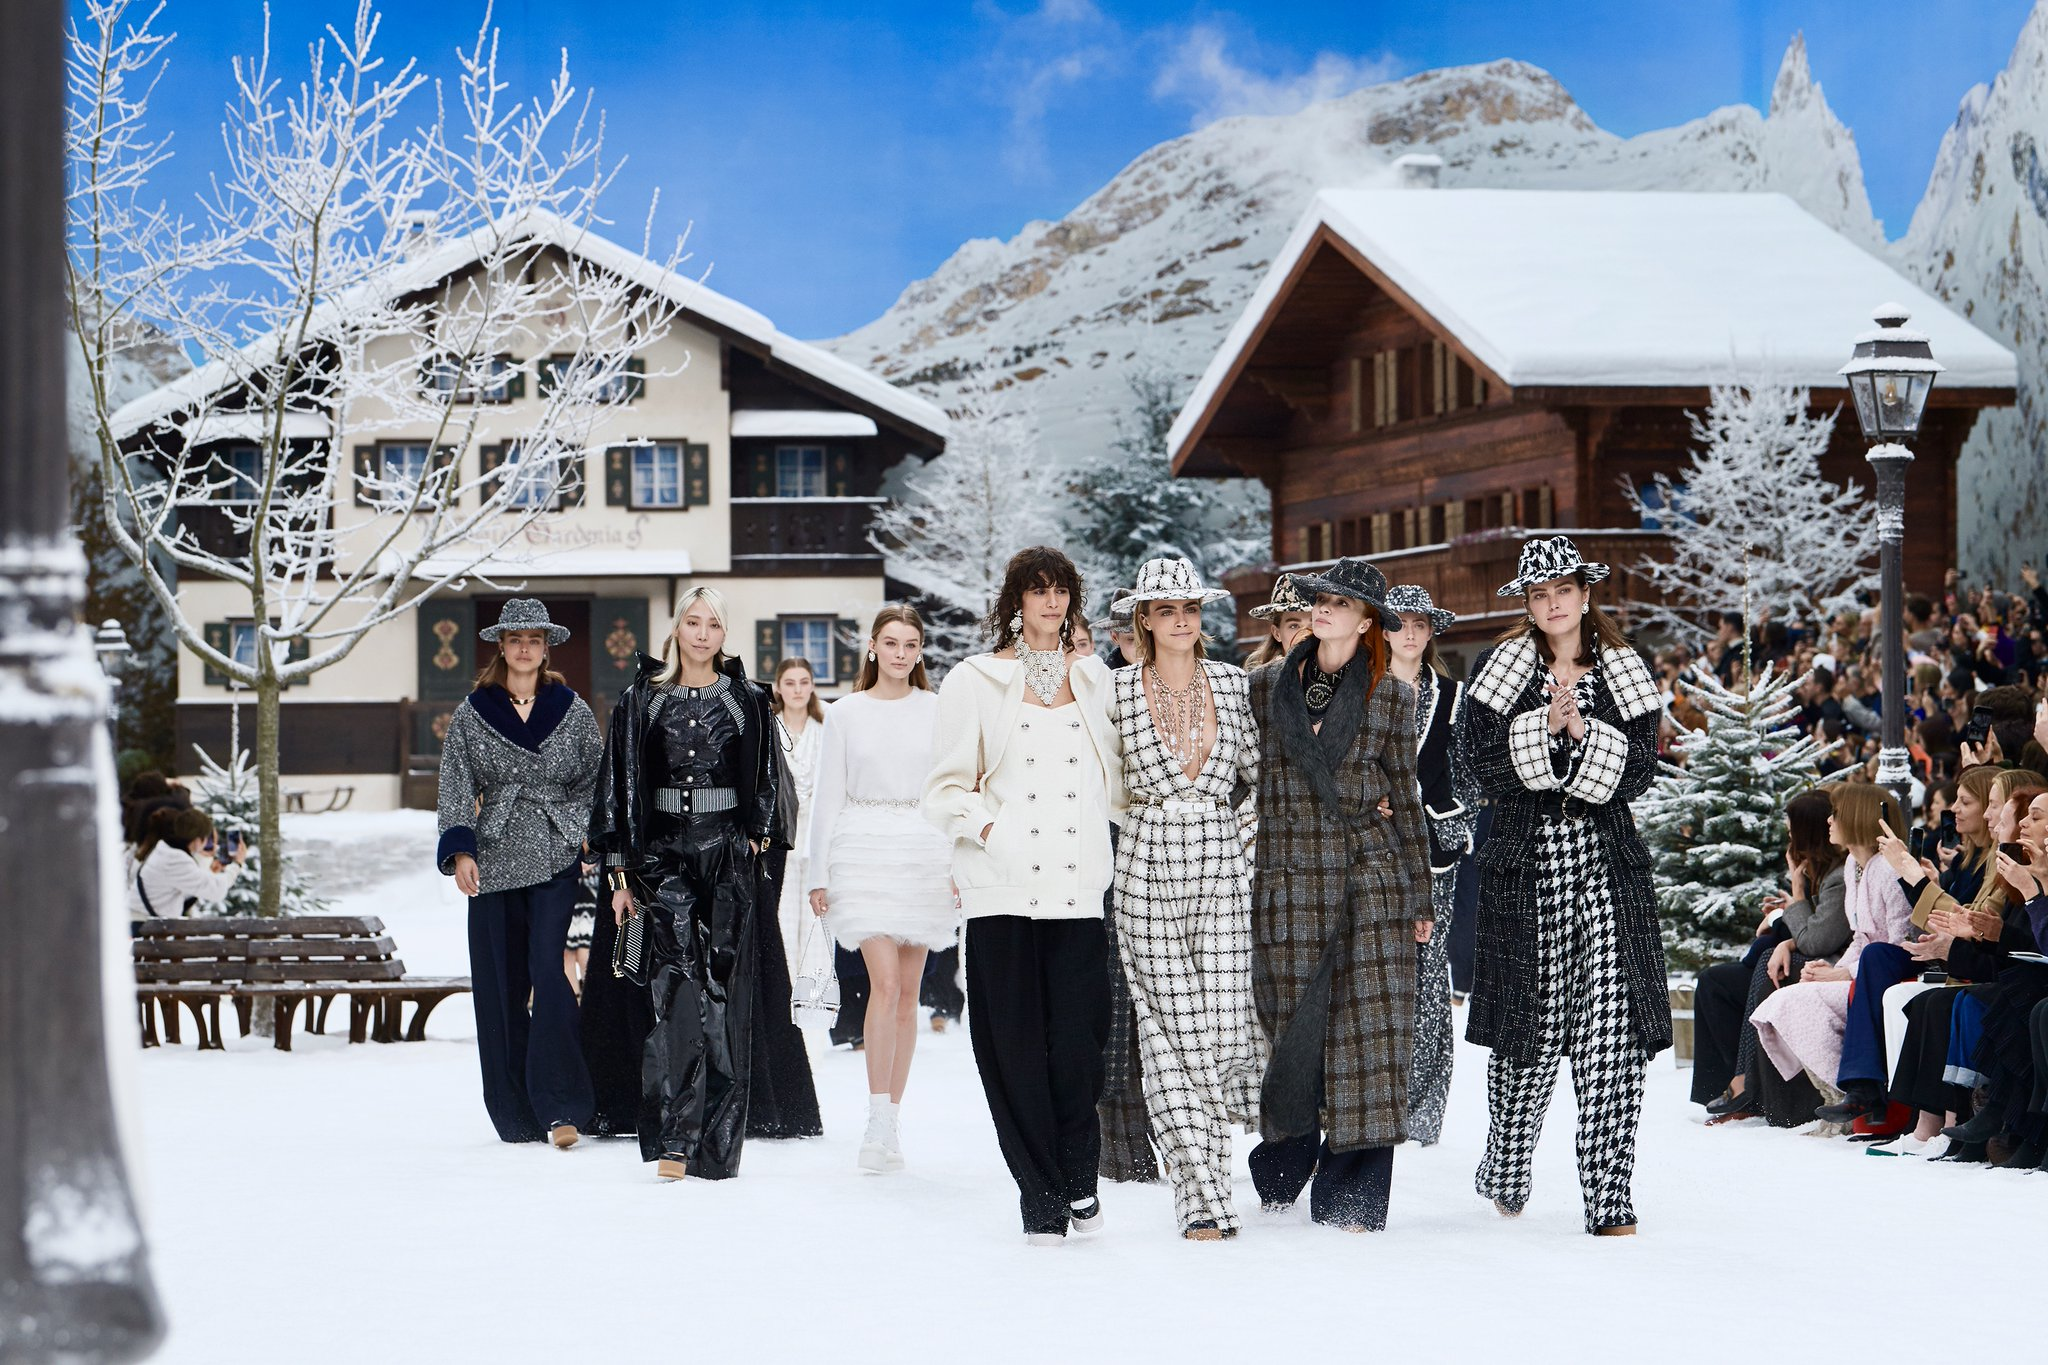 Chanel Fall/Winter 2019 Collection